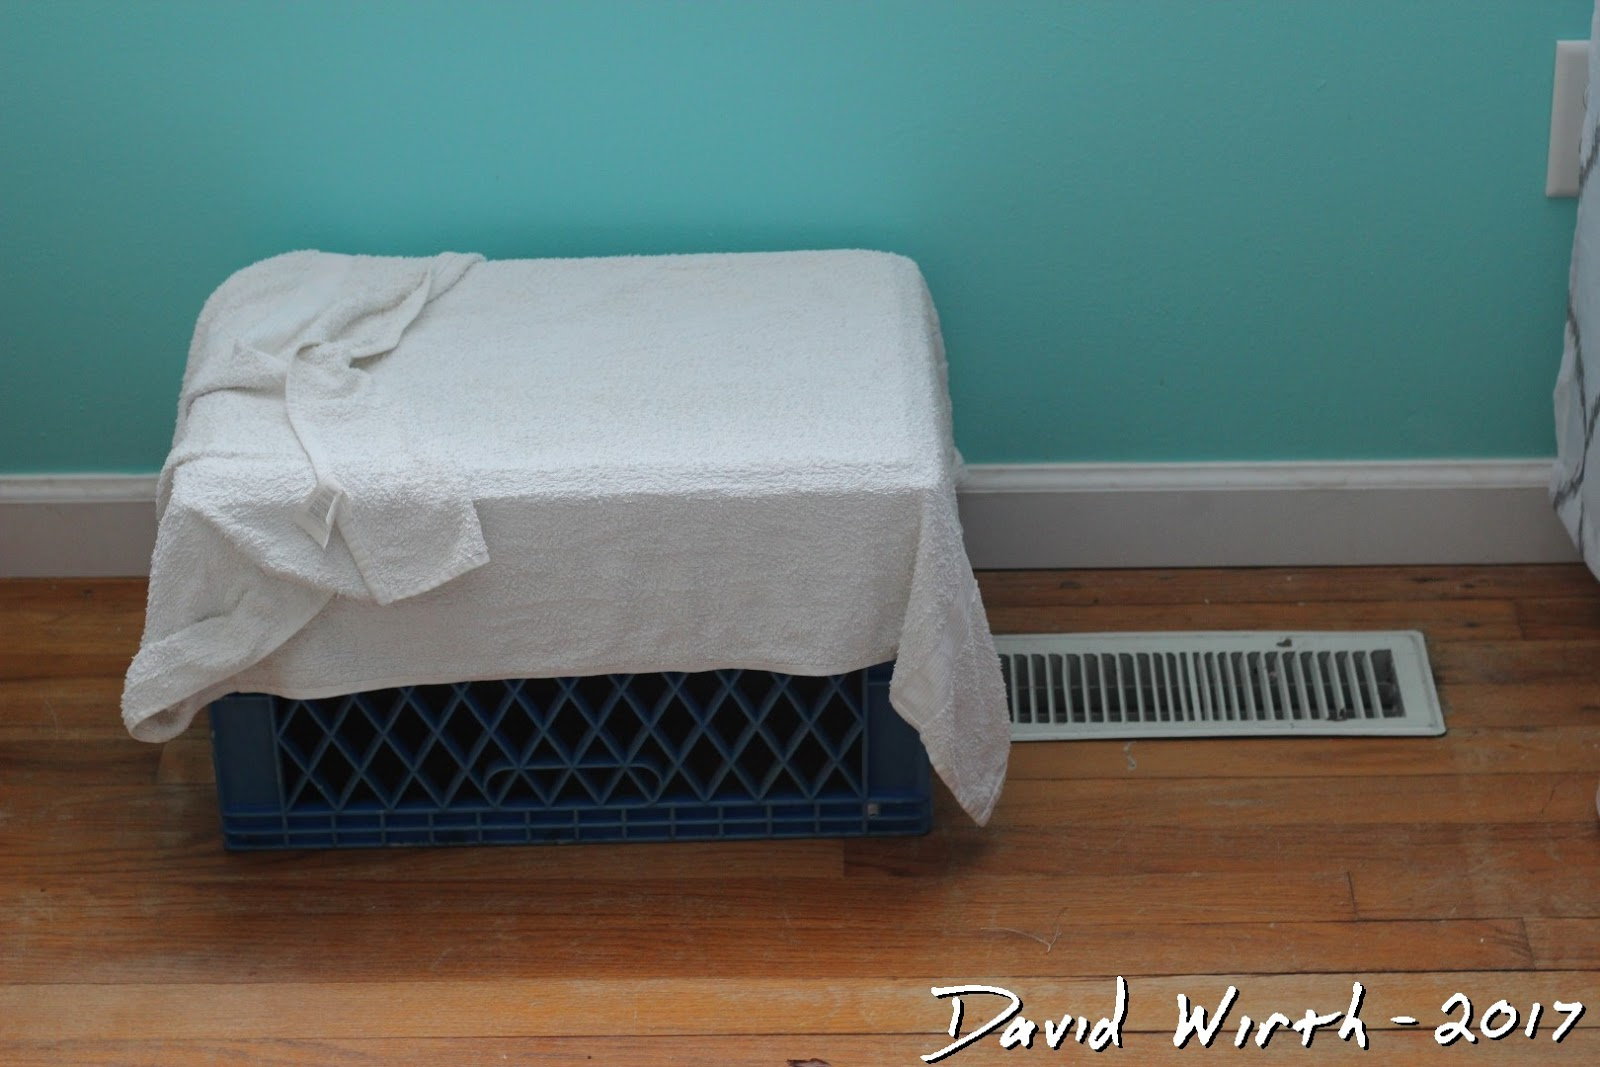 Instead Of Just Putting The Wet Towel Right On Top Floor Heat Vent I Decided To Use A Milk Crate